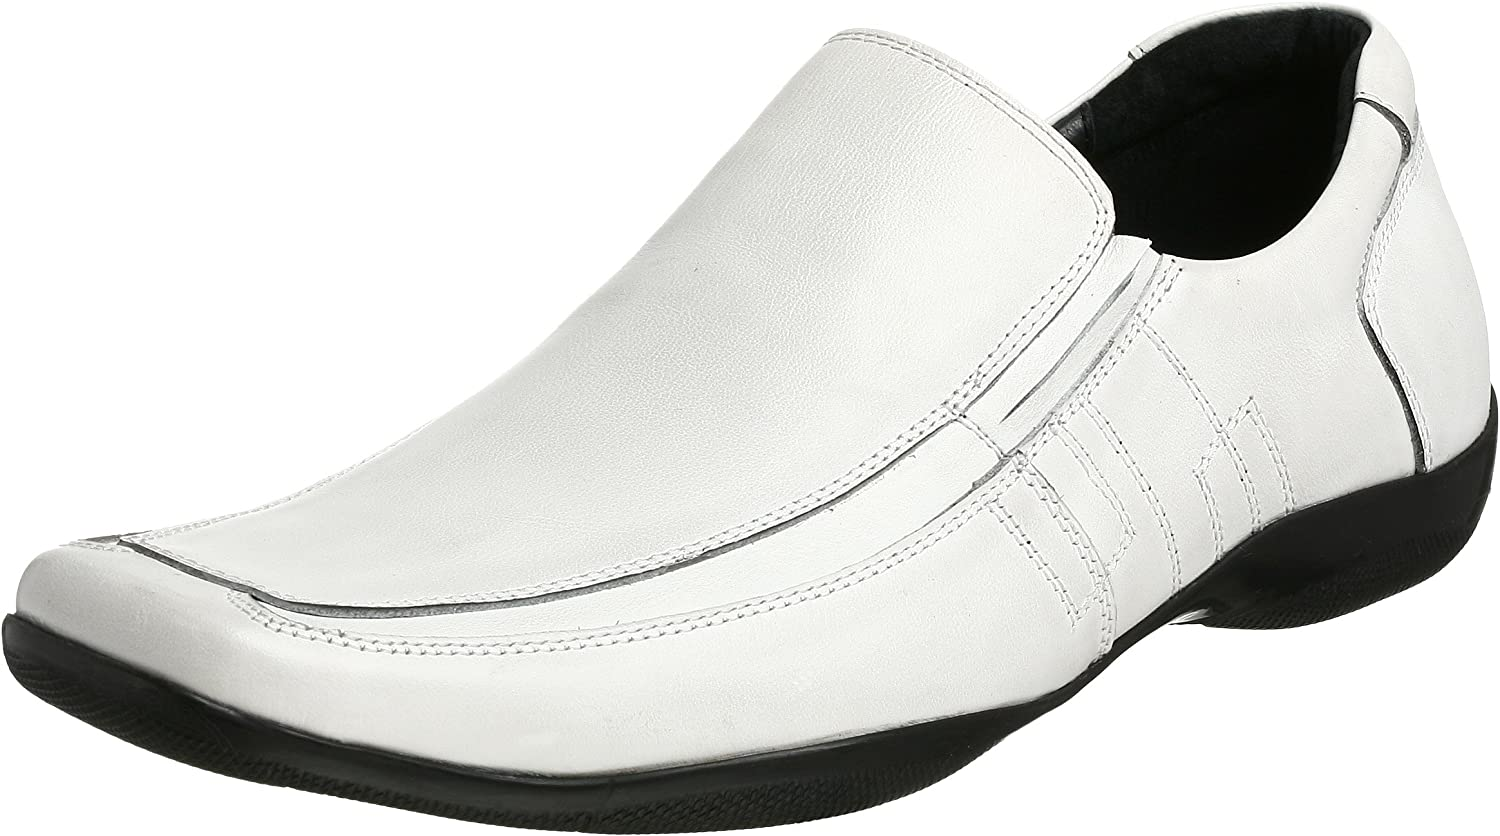 Max 79% OFF Kenneth Cole REACTION Men's Fast on Decision National products Slip